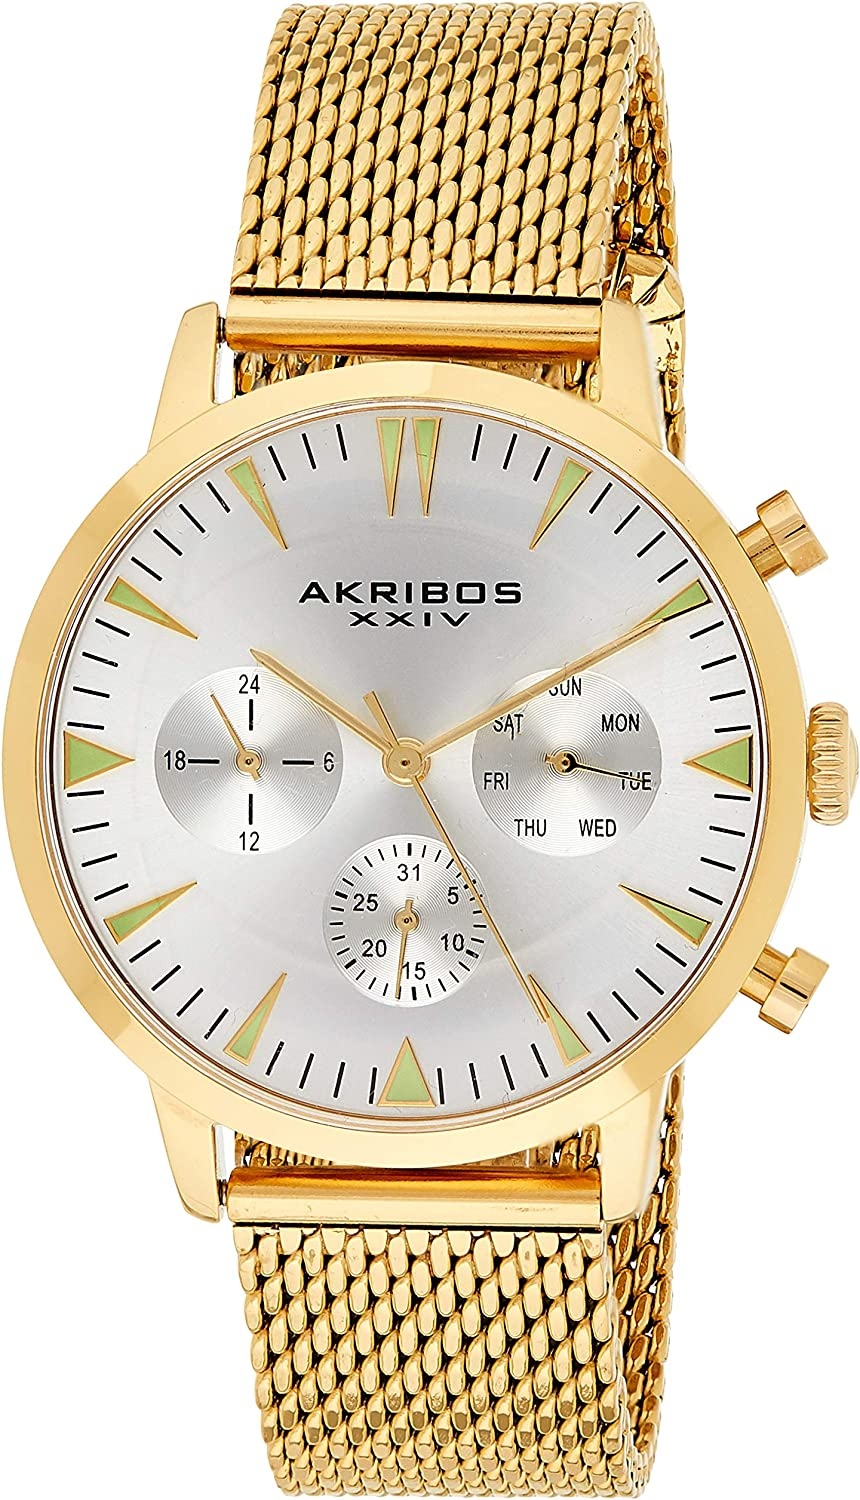 Akribos Multifunction Stainless Steel Mesh Bracelet Wristwatch - Date, Day and 24 Hour Chronograph Sub Dials Designer Men's Watch - AK1027